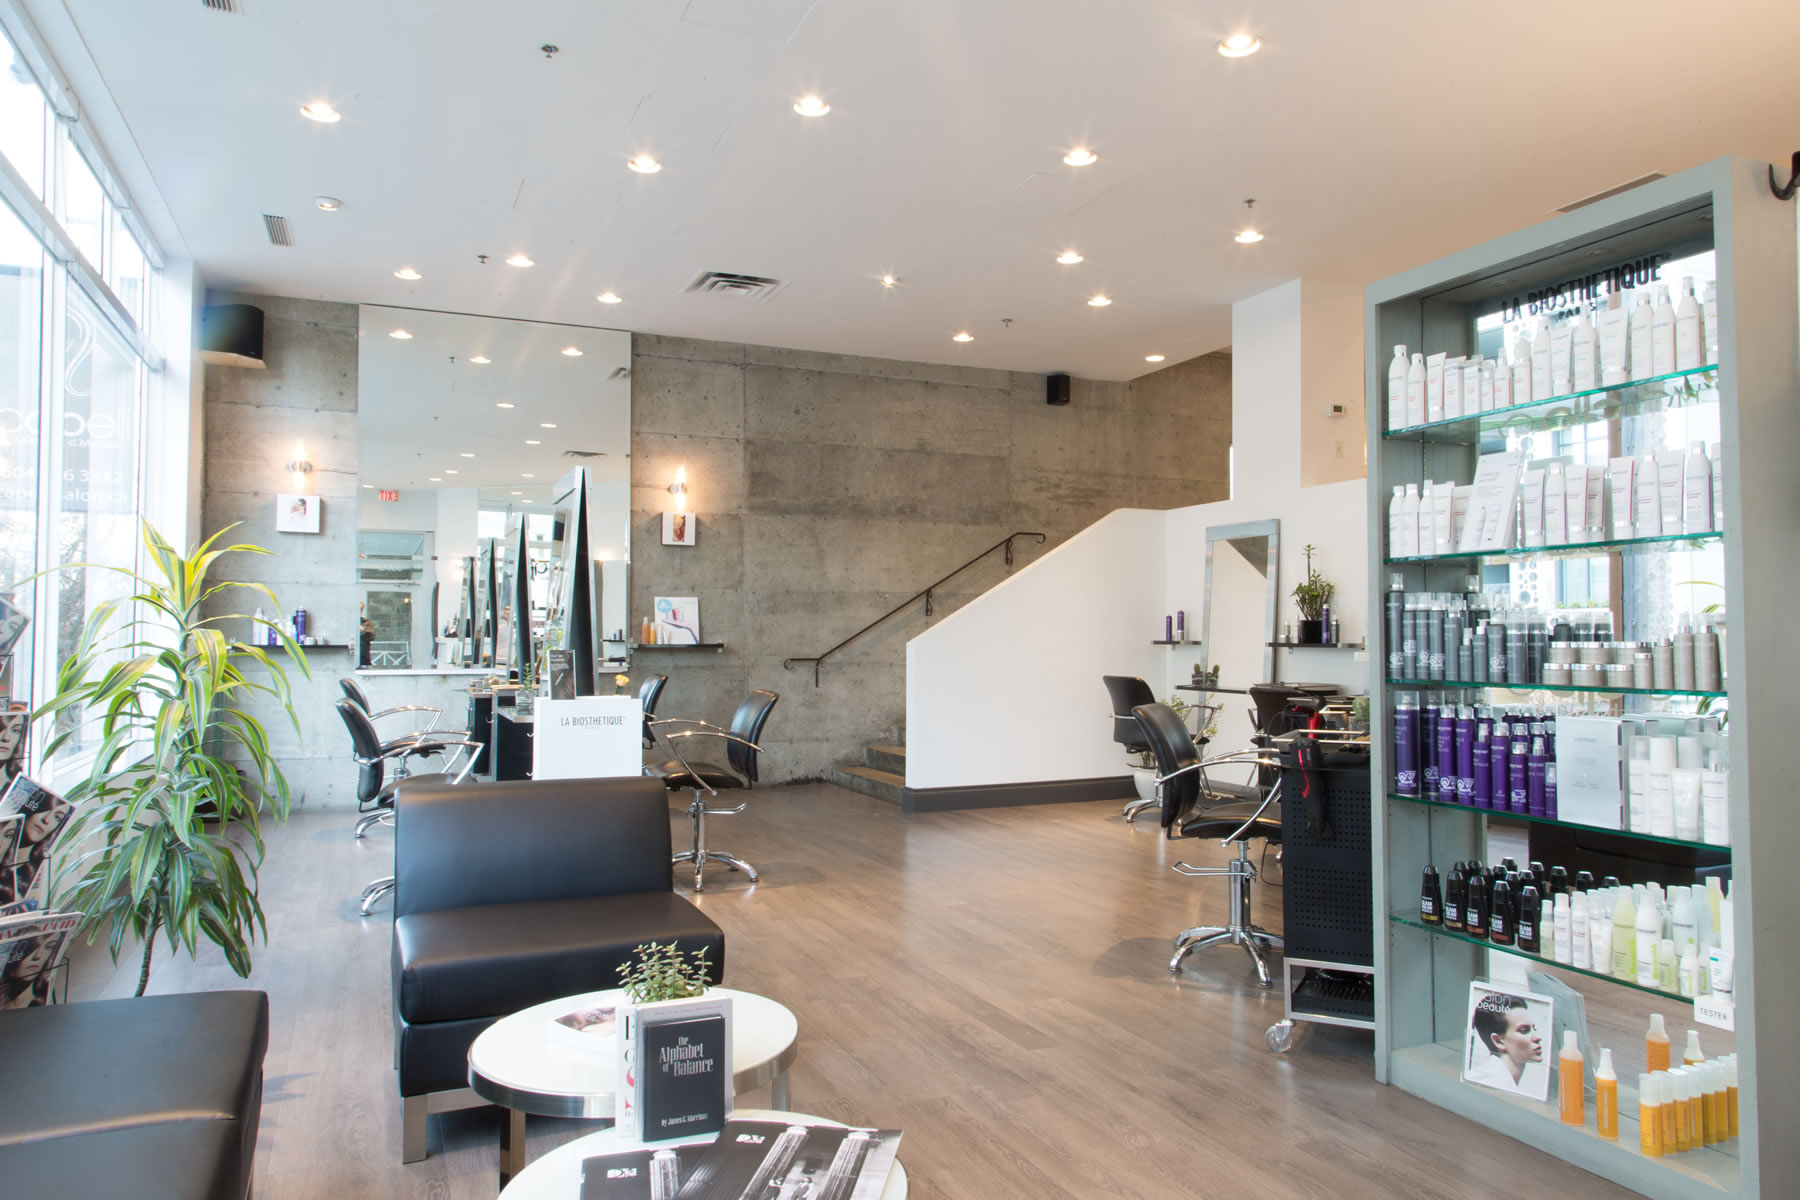 Capelli hair salon vancouver hair salon best vancouver for A salon vancouver